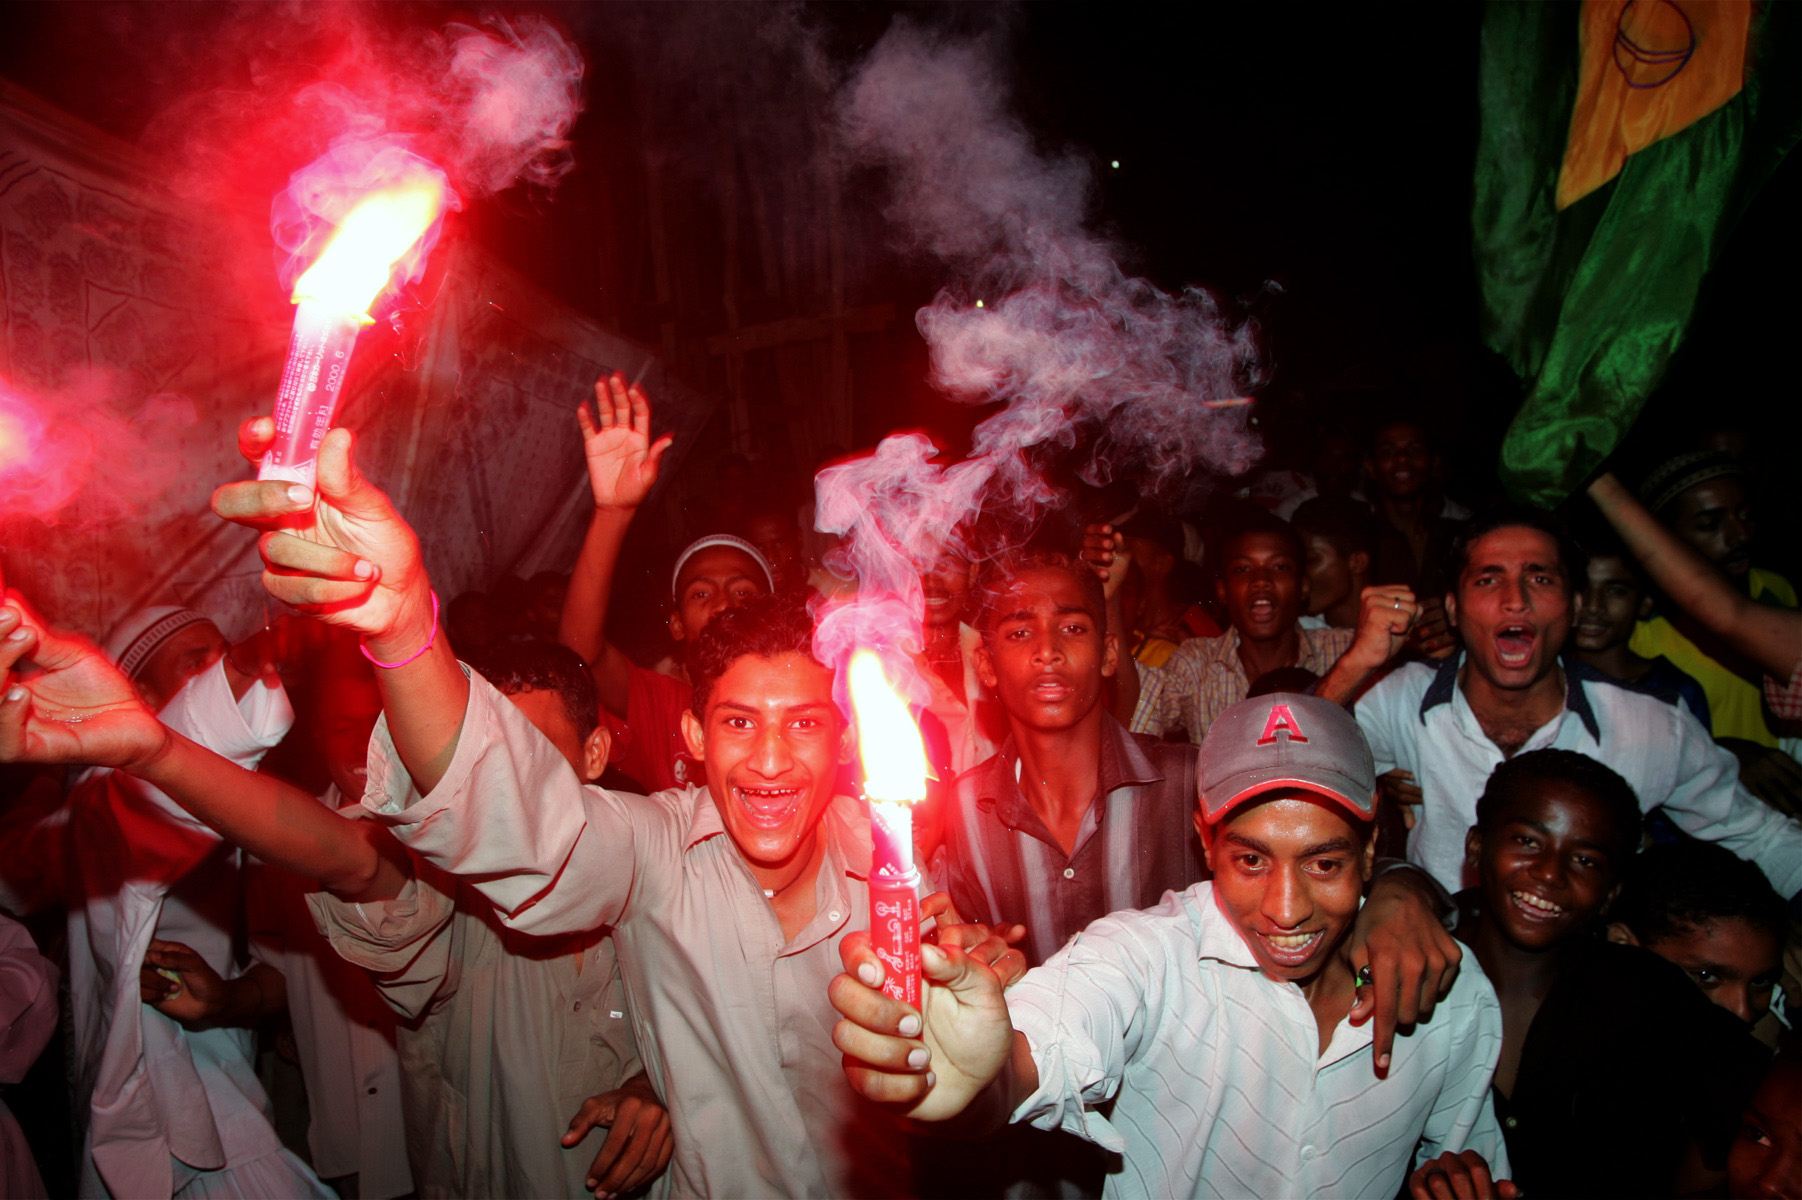 Pakistani soccer fans celebrate a Brazil victory in Lyari, one of the oldest and most densely populated parts of the city, plagued by street crime, drugs, and unemployment.